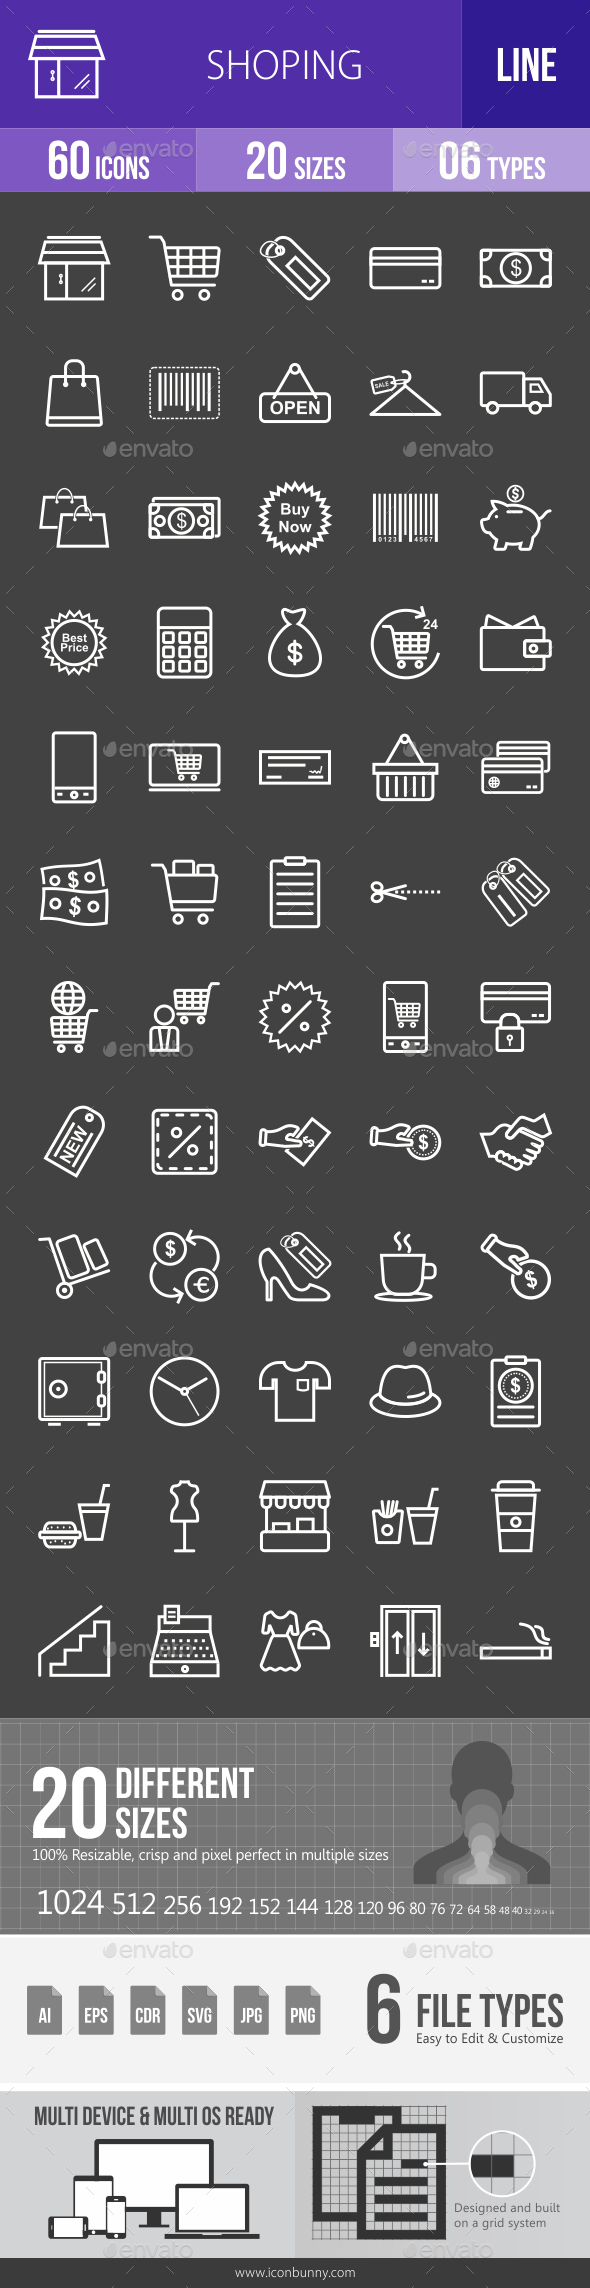 Shopping Line Inverted Icons - Icons